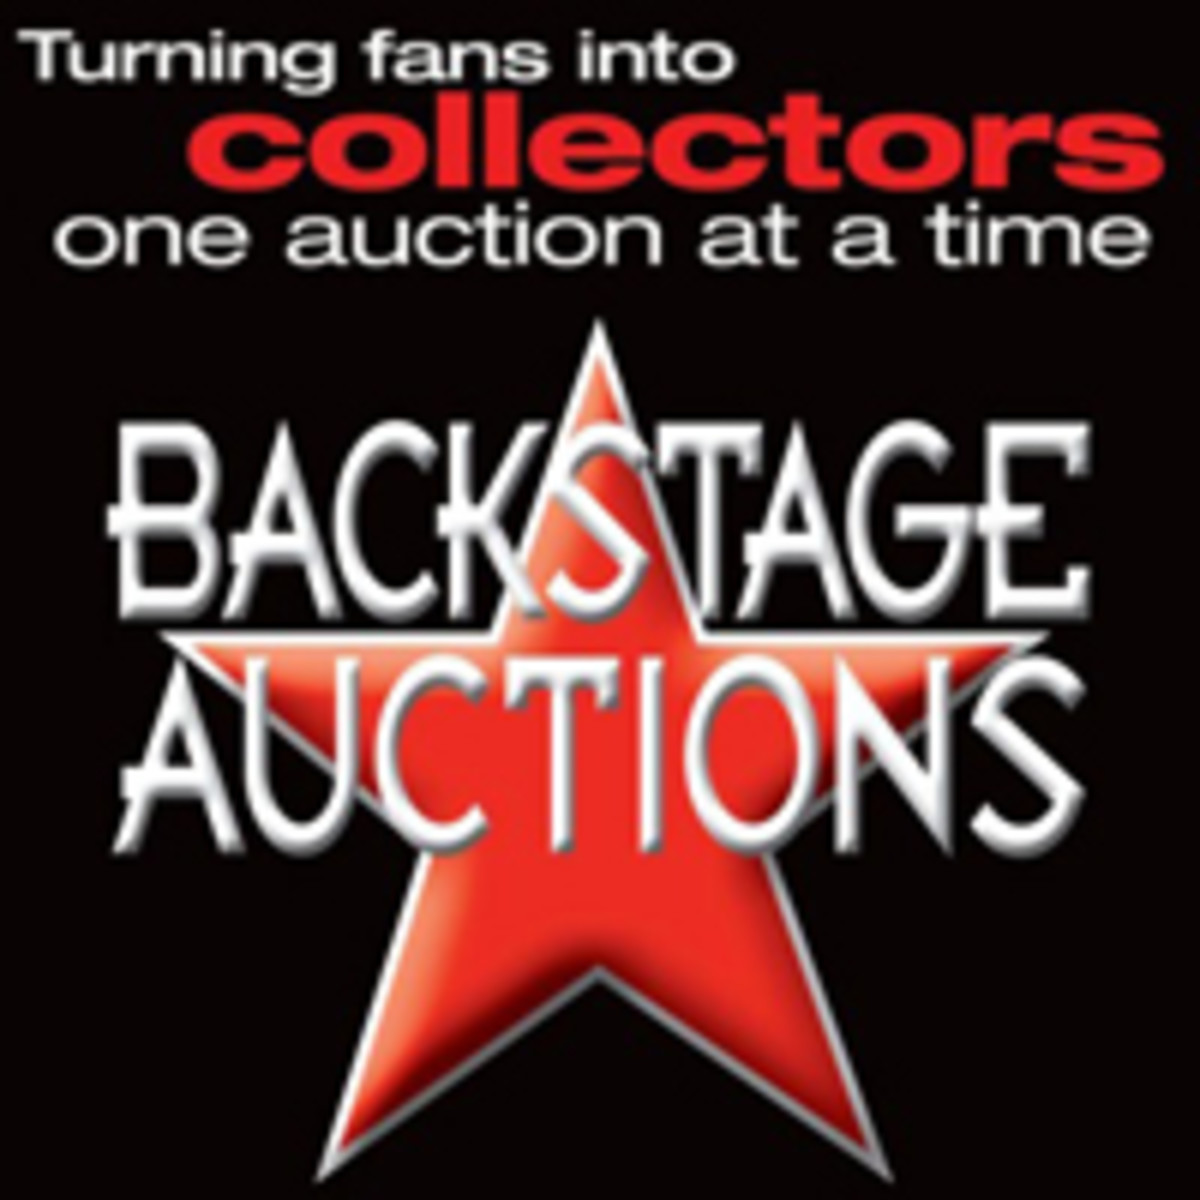 Backstage Auctions logo